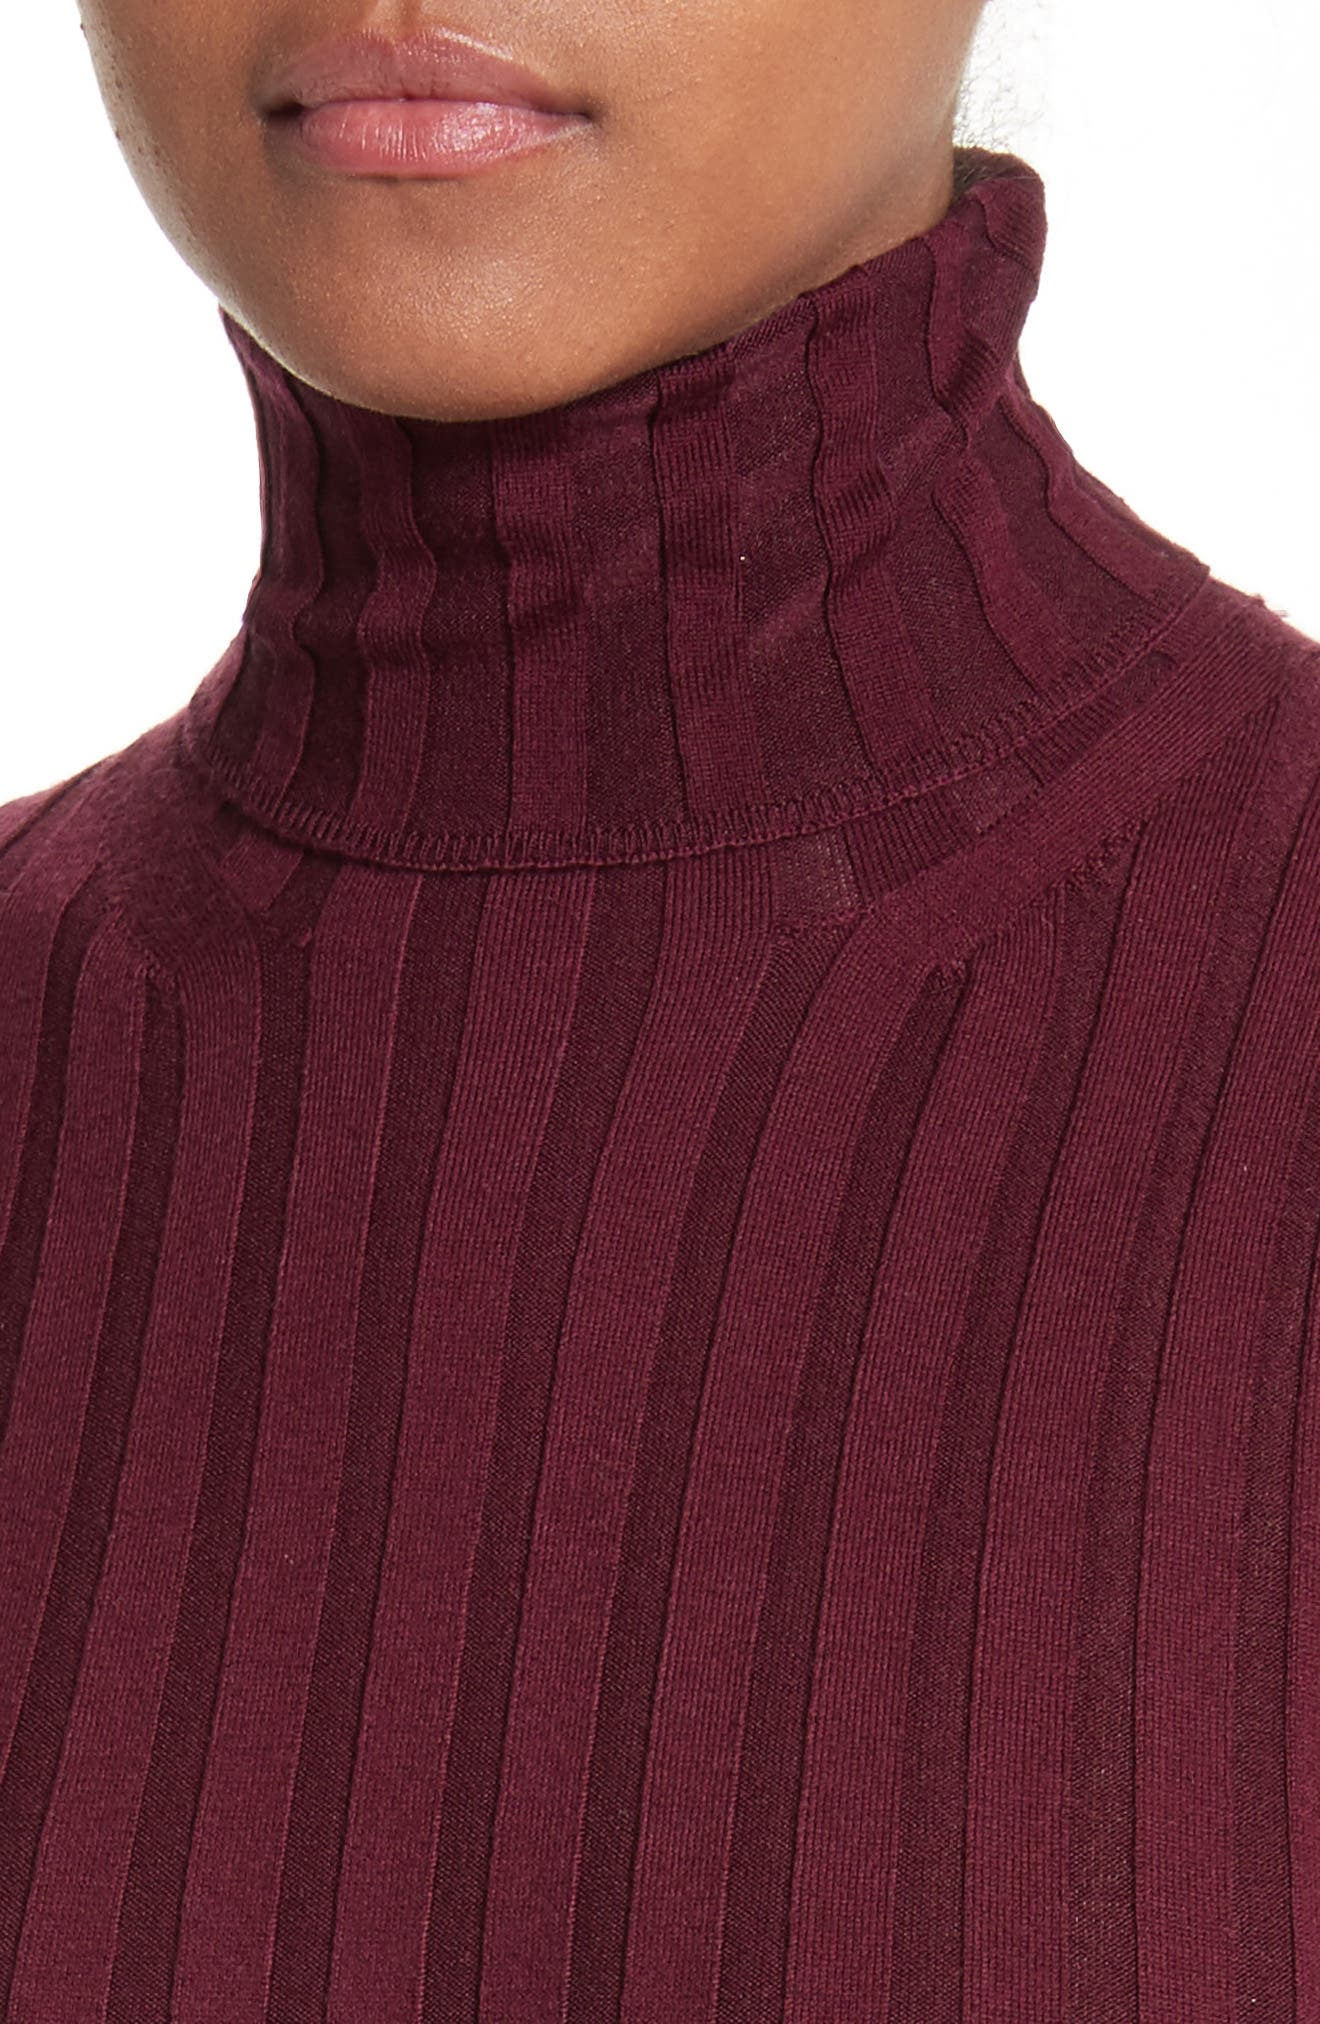 Corina Fitted Turtleneck Sweater,                             Alternate thumbnail 4, color,                             Burgundy